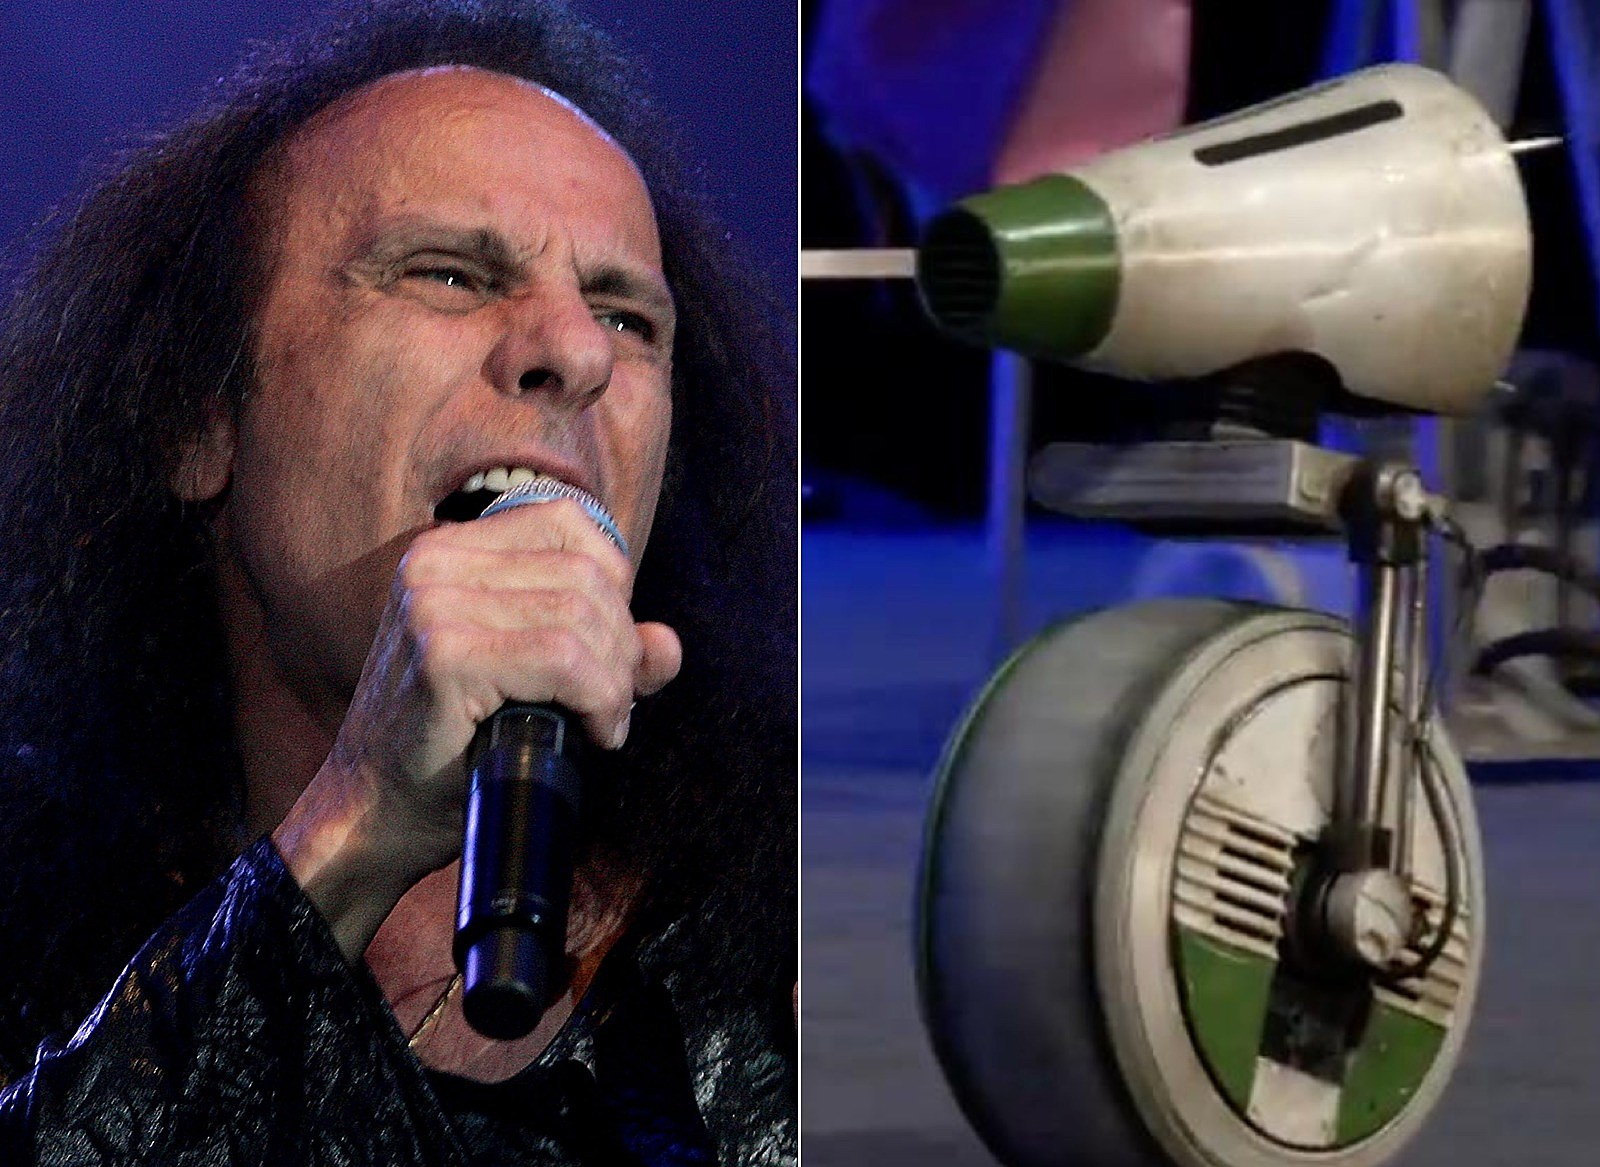 Is the New 'Star Wars' Droid a Tribute to Ronnie James Dio?